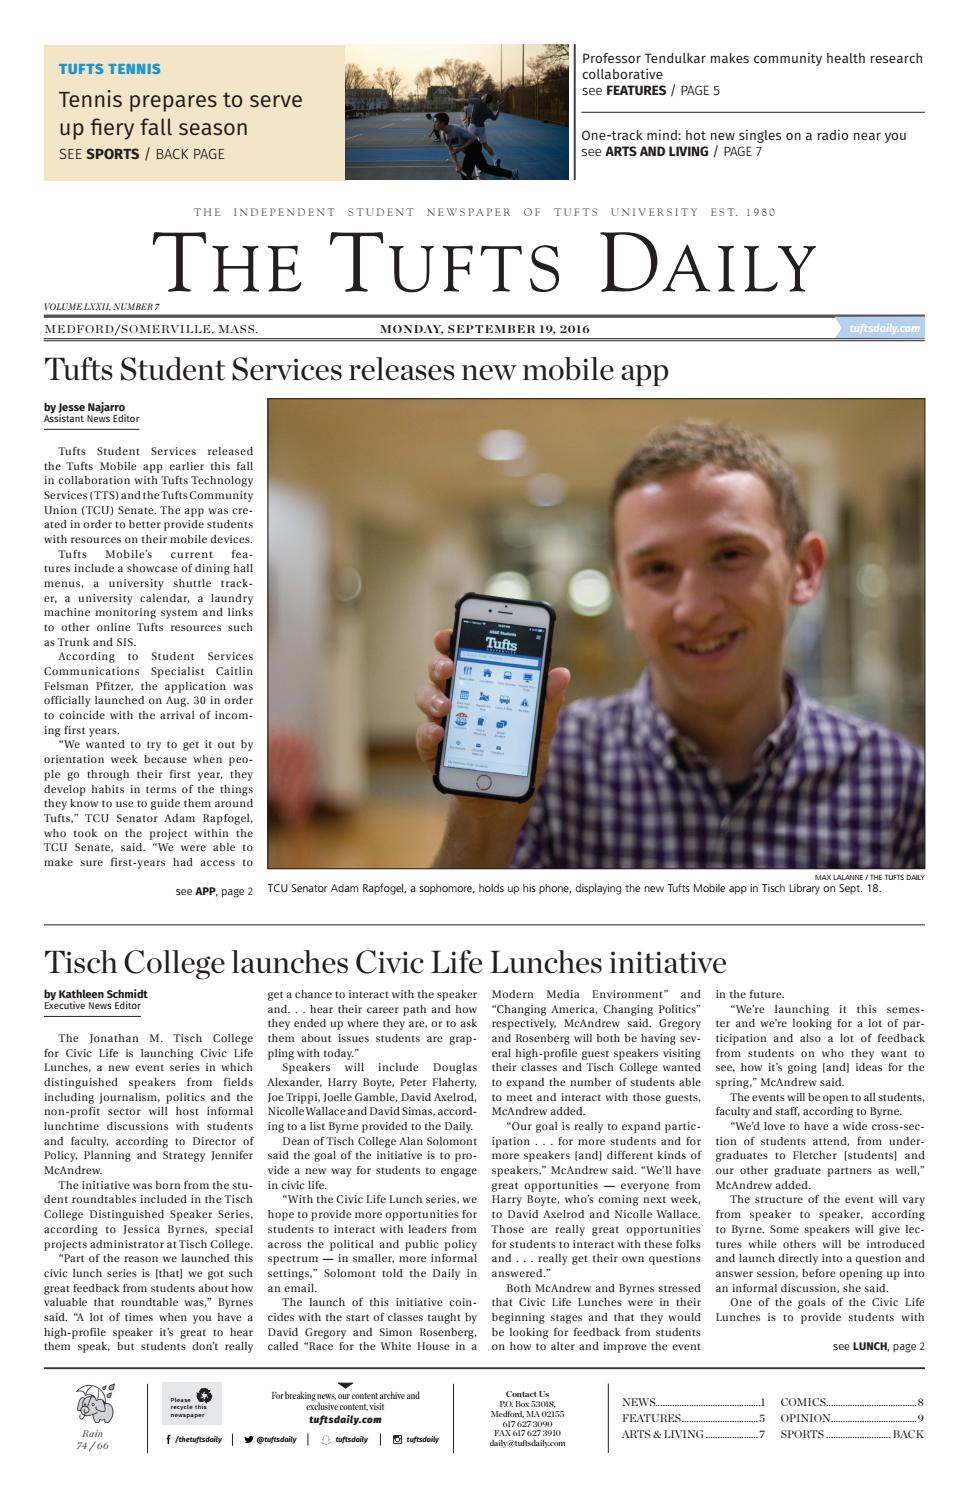 Monday, September 19, 2016 by Tufts Daily - issuu